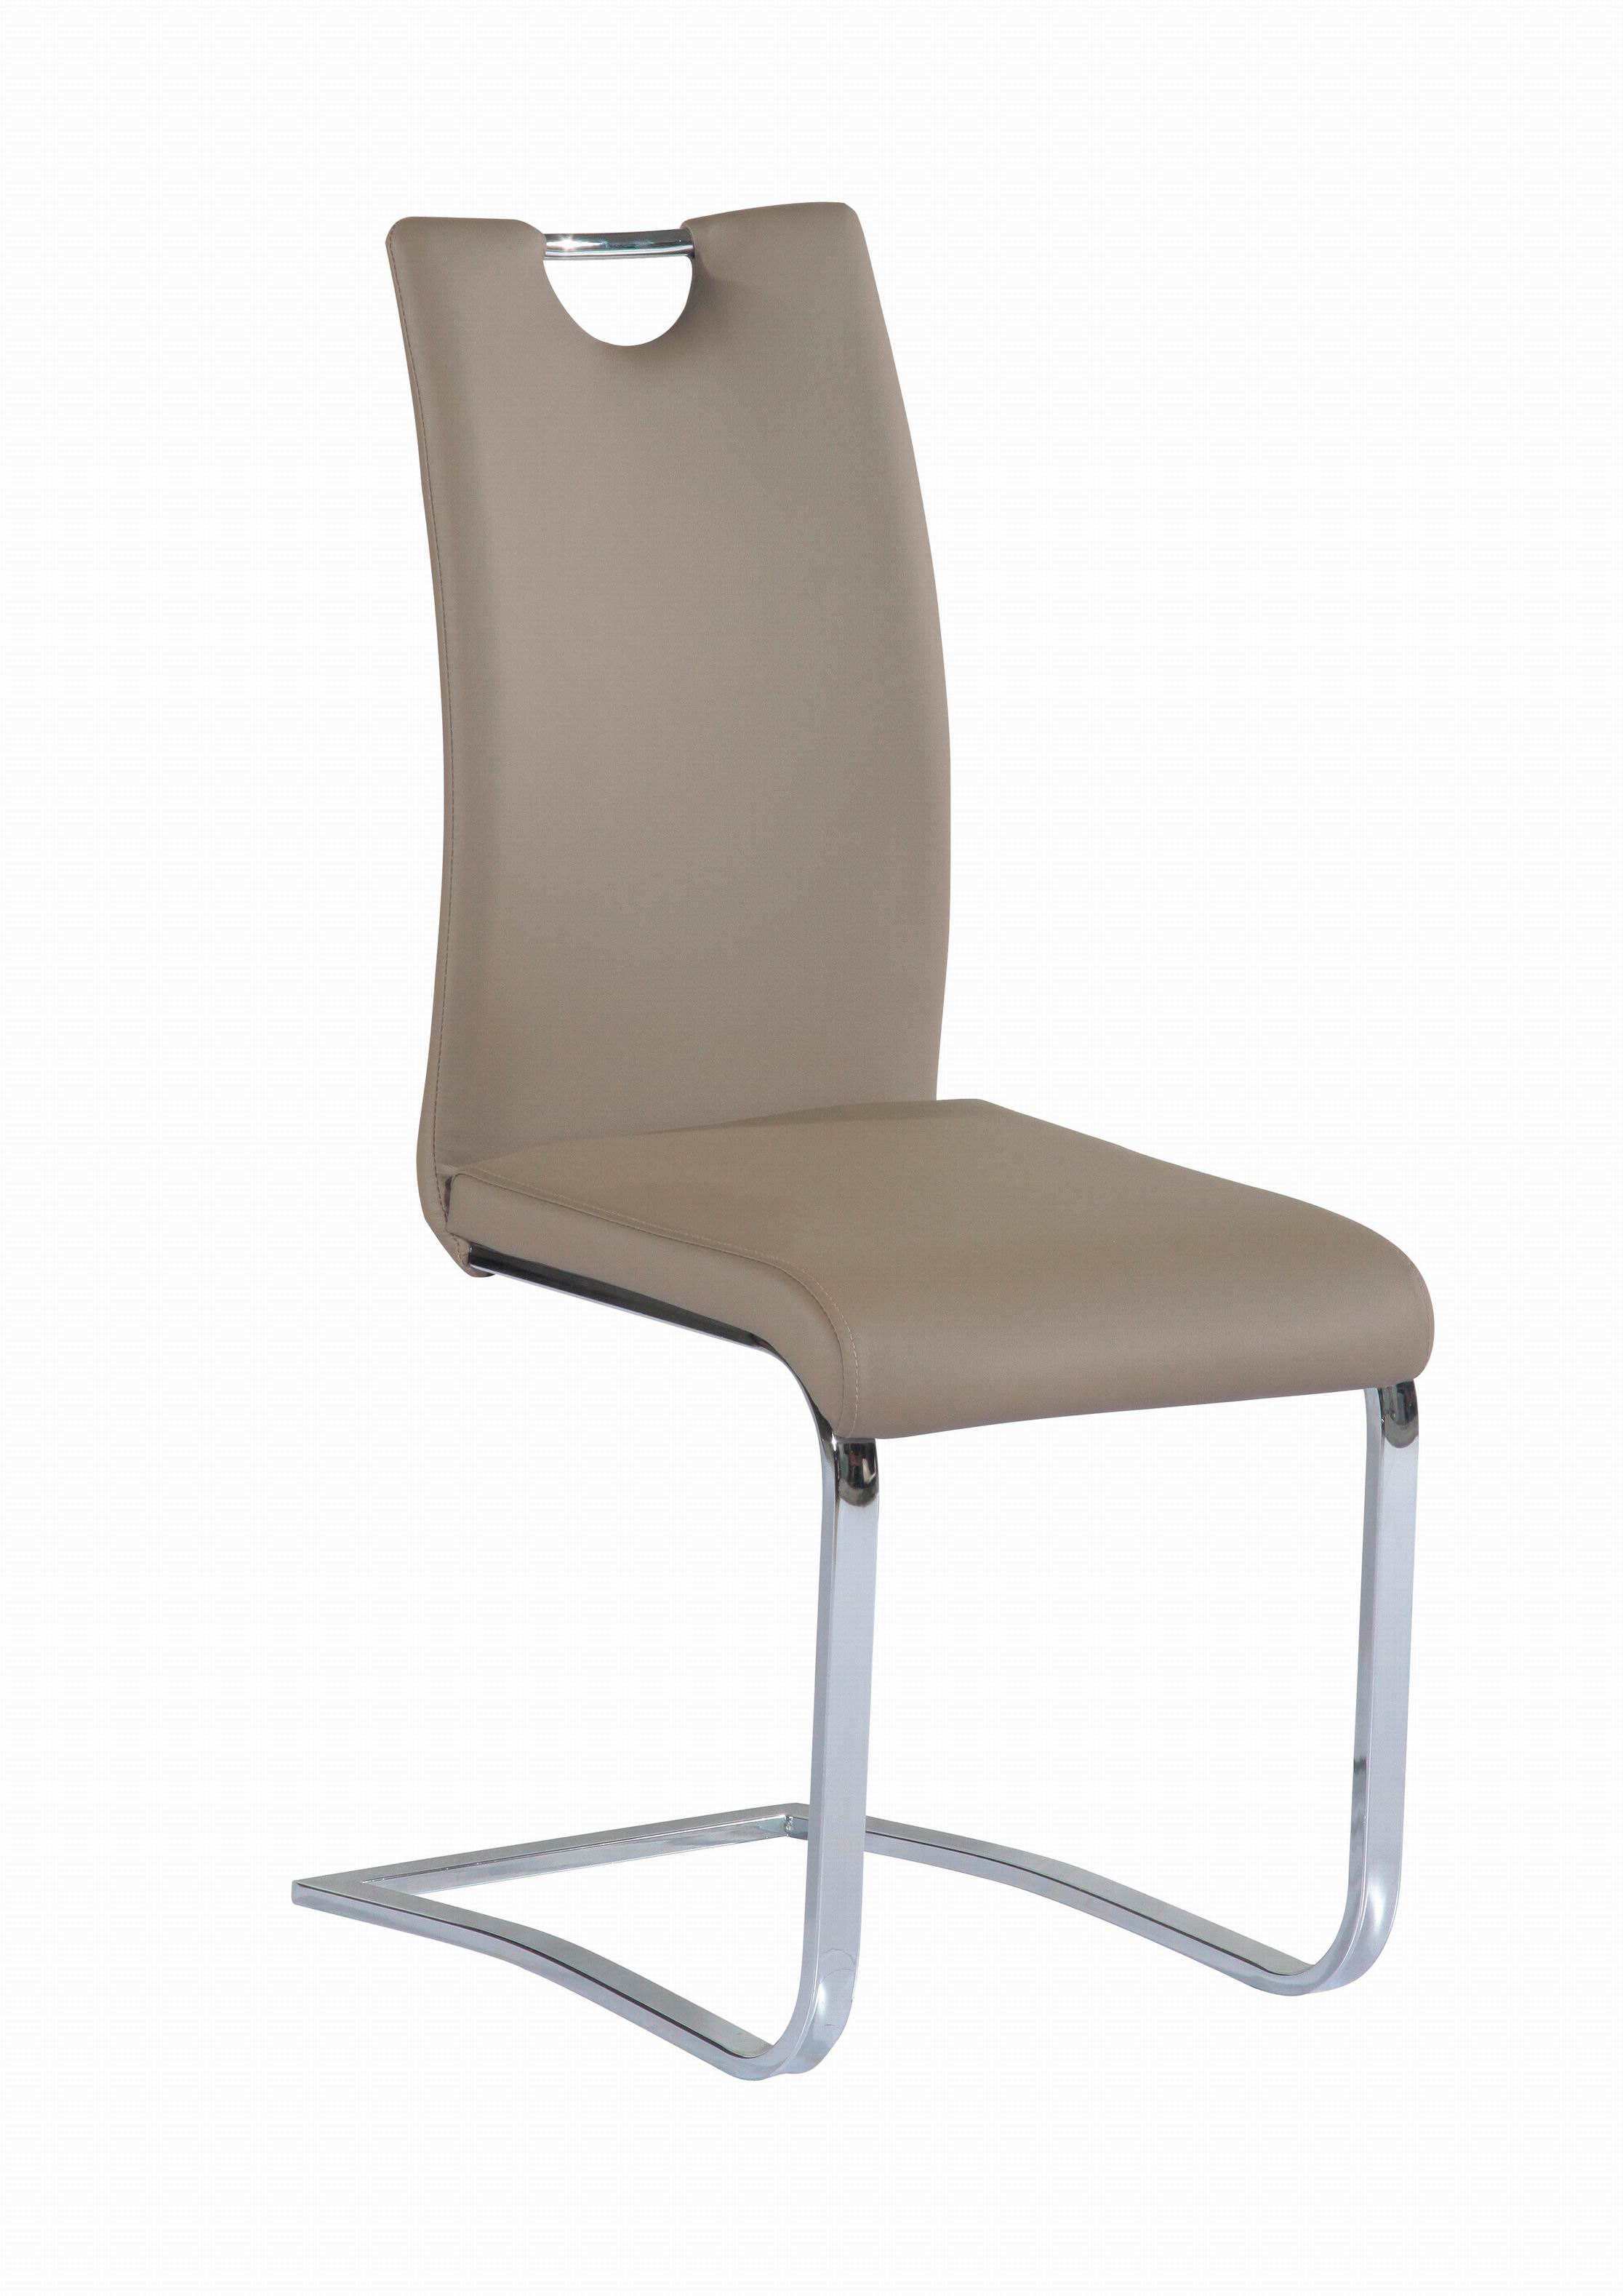 chair design with handle best poker chairs taupe upholstered side chrome frame and